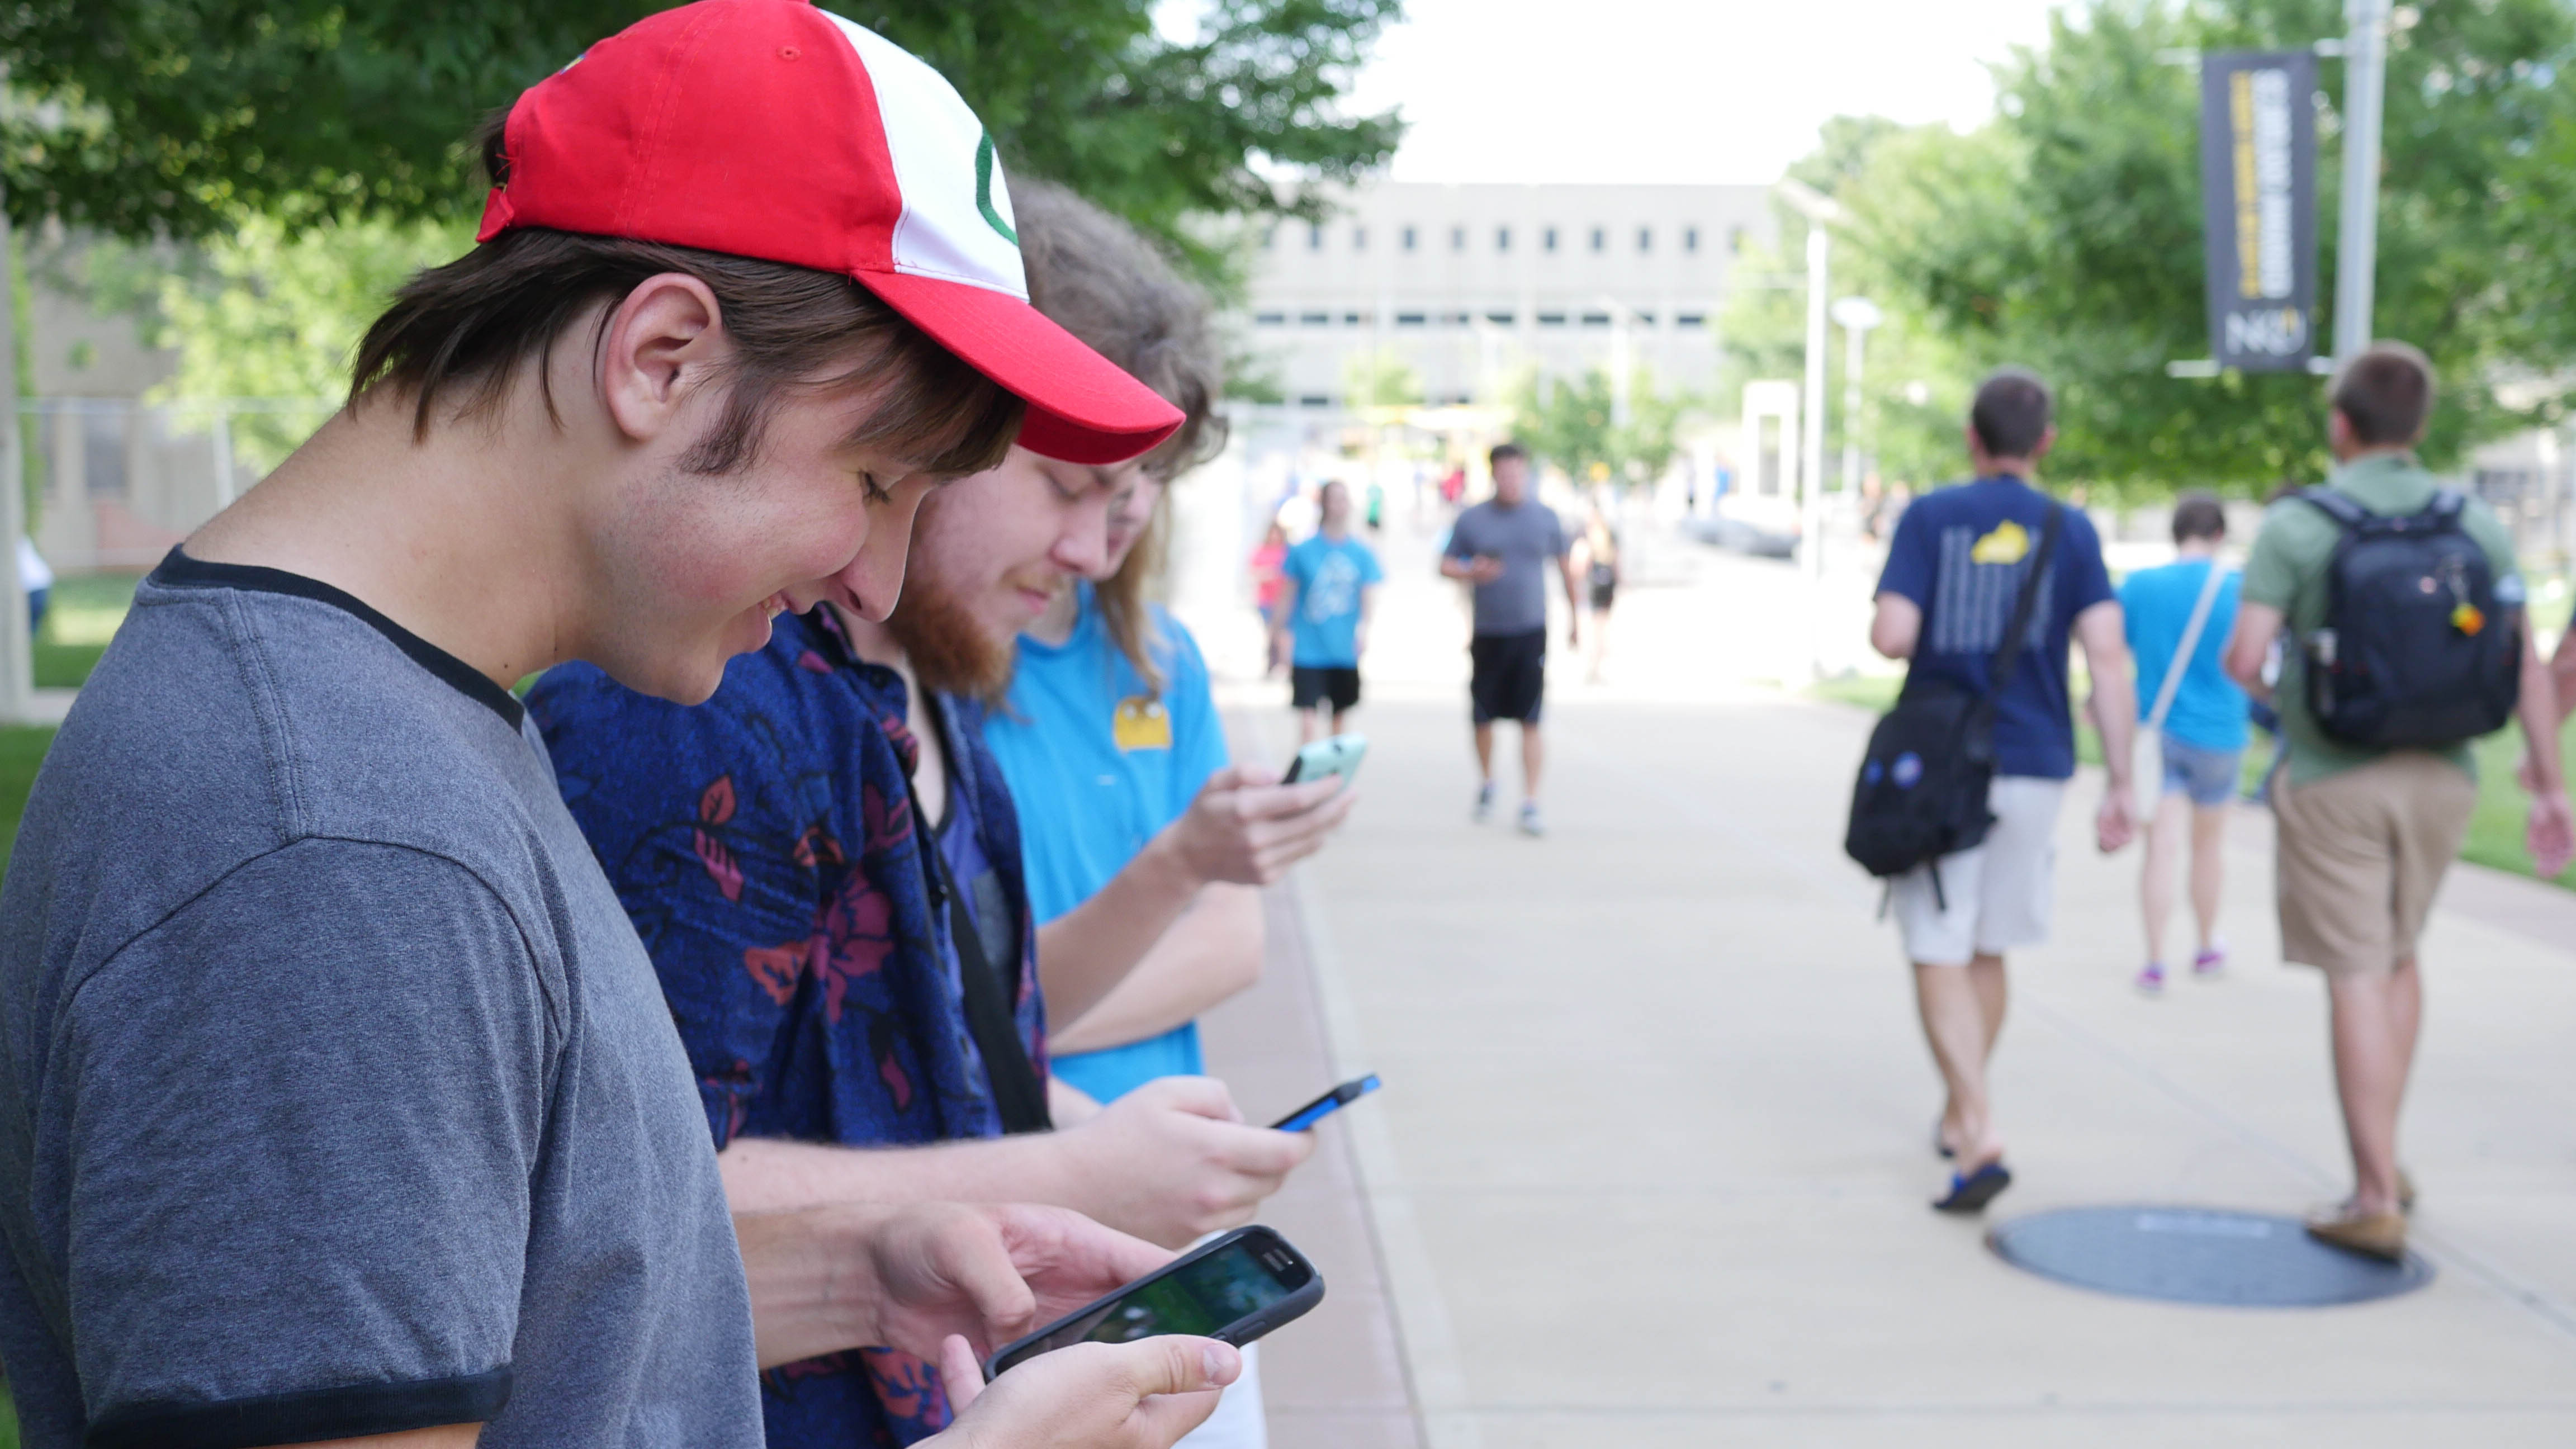 Over+1%2C000+people+joined+and+battled+Pokemon+forces+Tuesday+evening+on+NKU%27s+campus.+